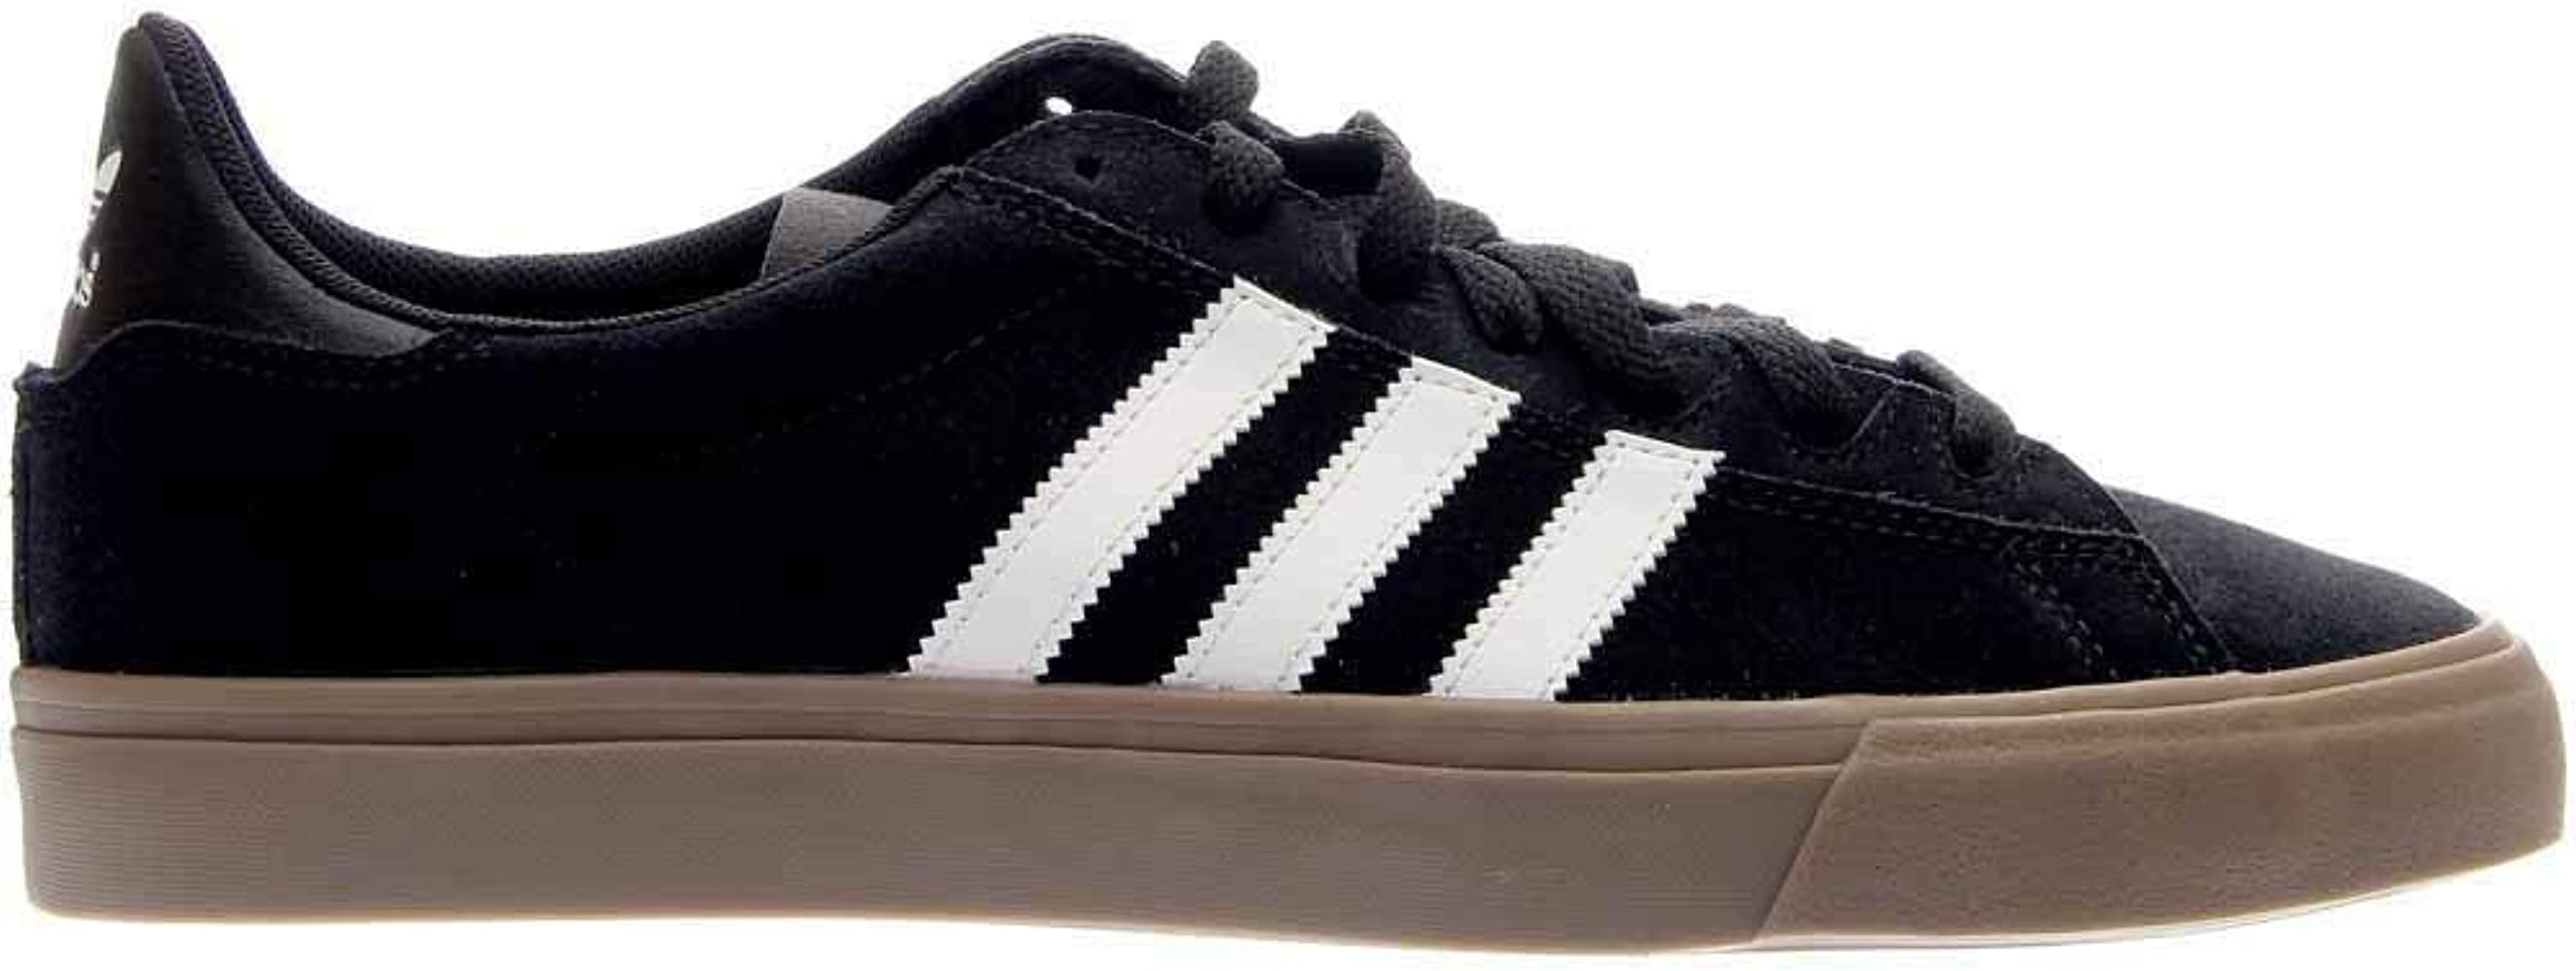 a4ea8167b8b61 adidas Campus Vulc II 80s Skate Shoes Black White Gum - 7 - Amazon ...